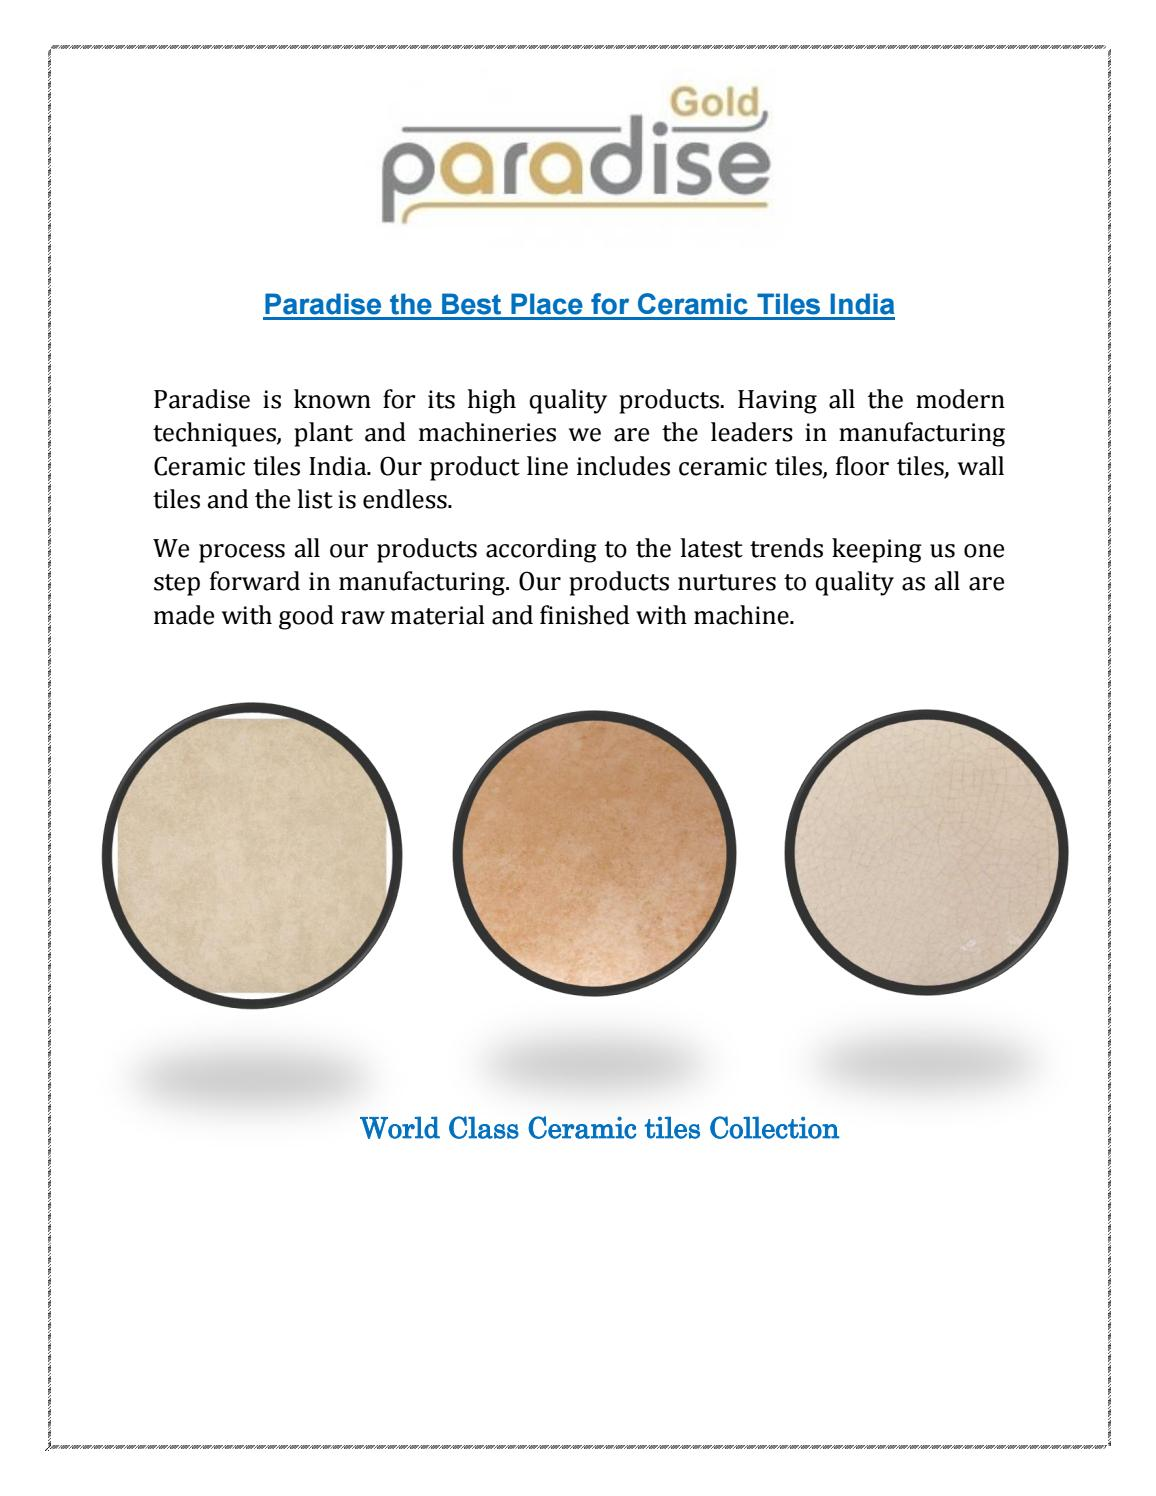 Paradise Right Place For Modern Ceramic Tiles India By